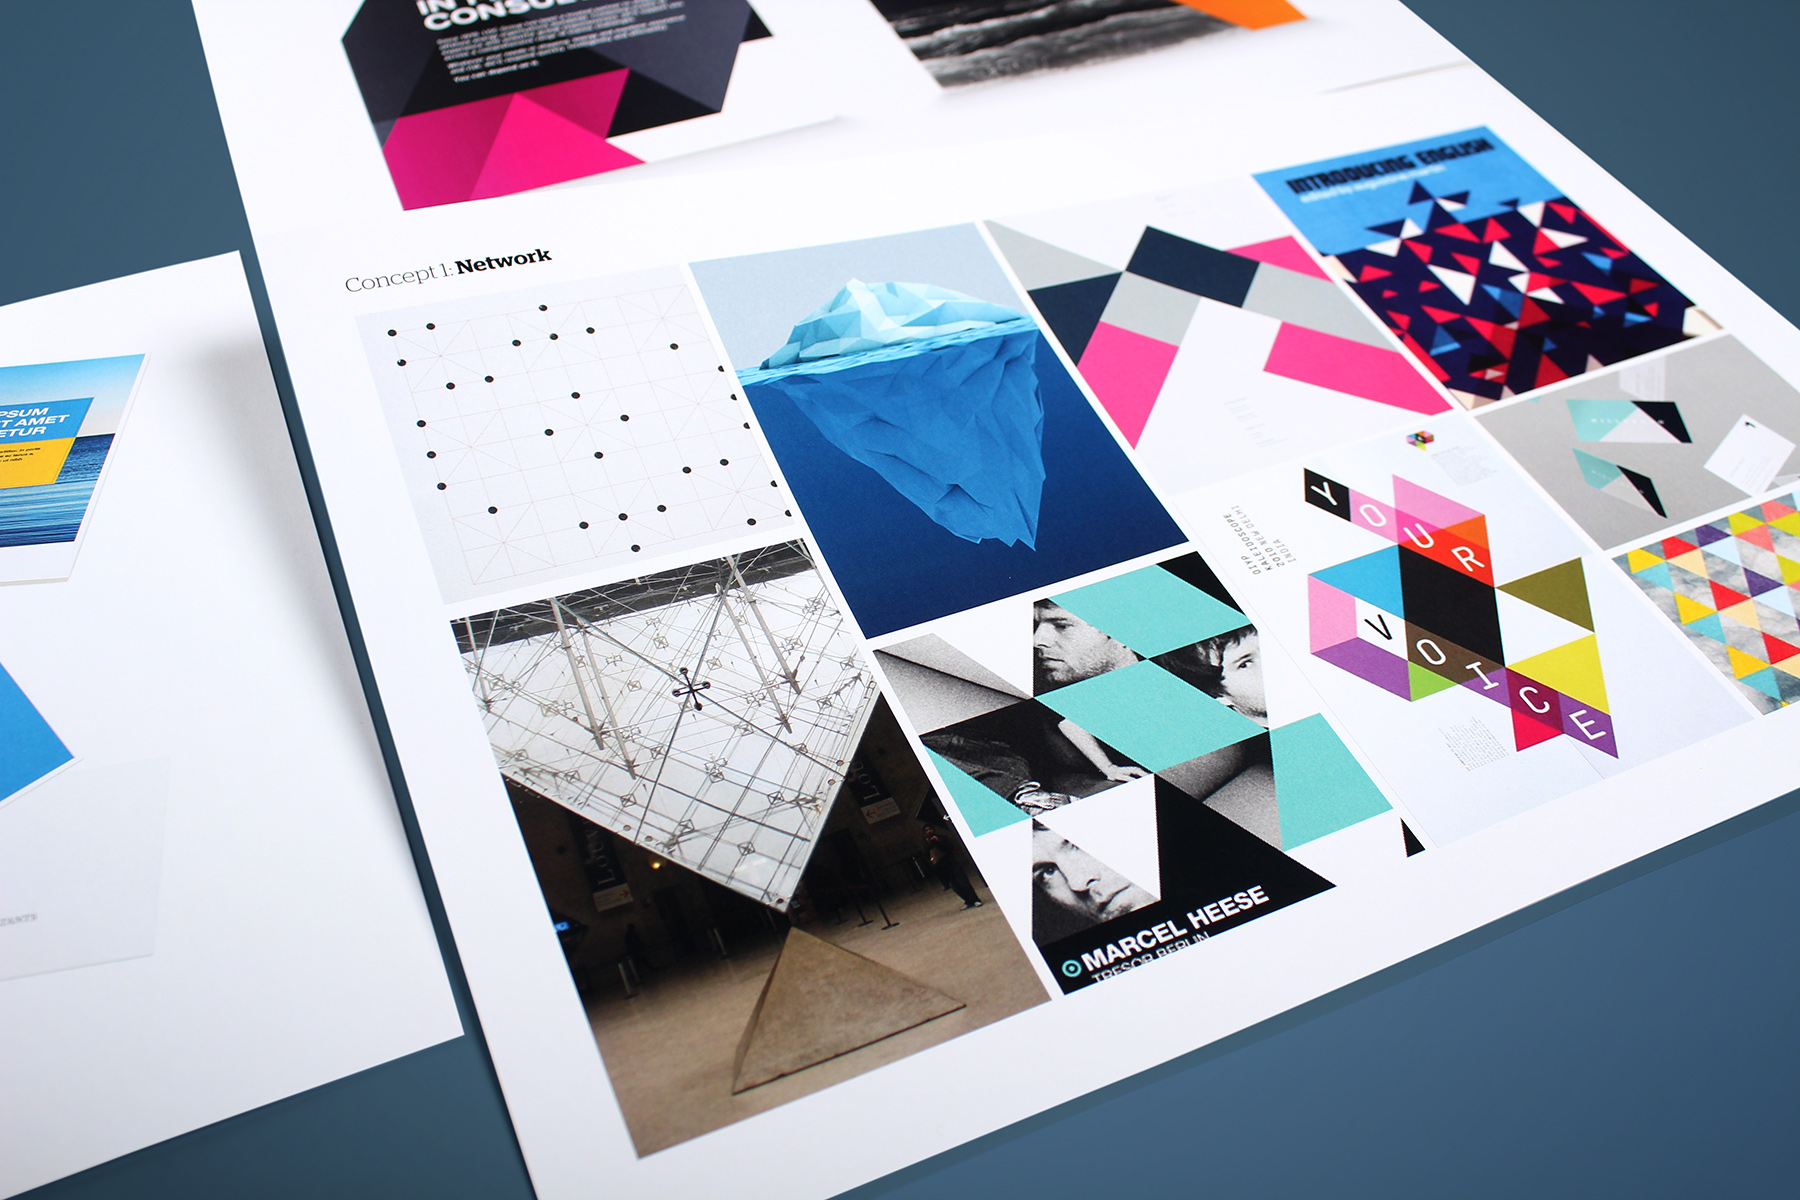 Our visual identity look and feel concept became inspired by the idea of global connectivity mashed up with a contemporary nautical twist.